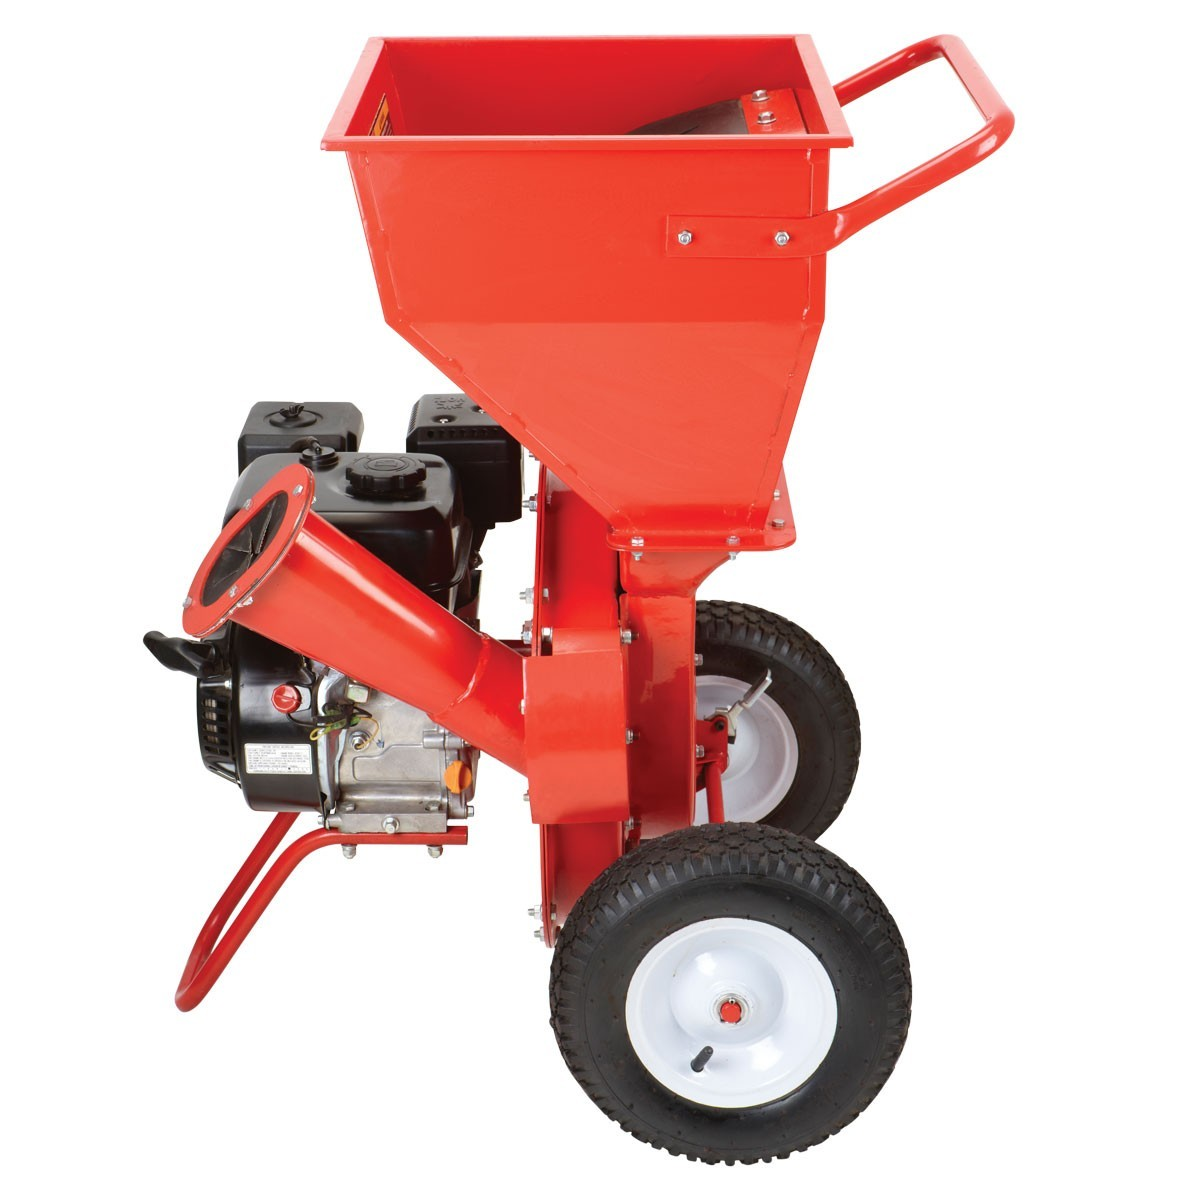 Harbor Freight Chipper Open Source Small Engines